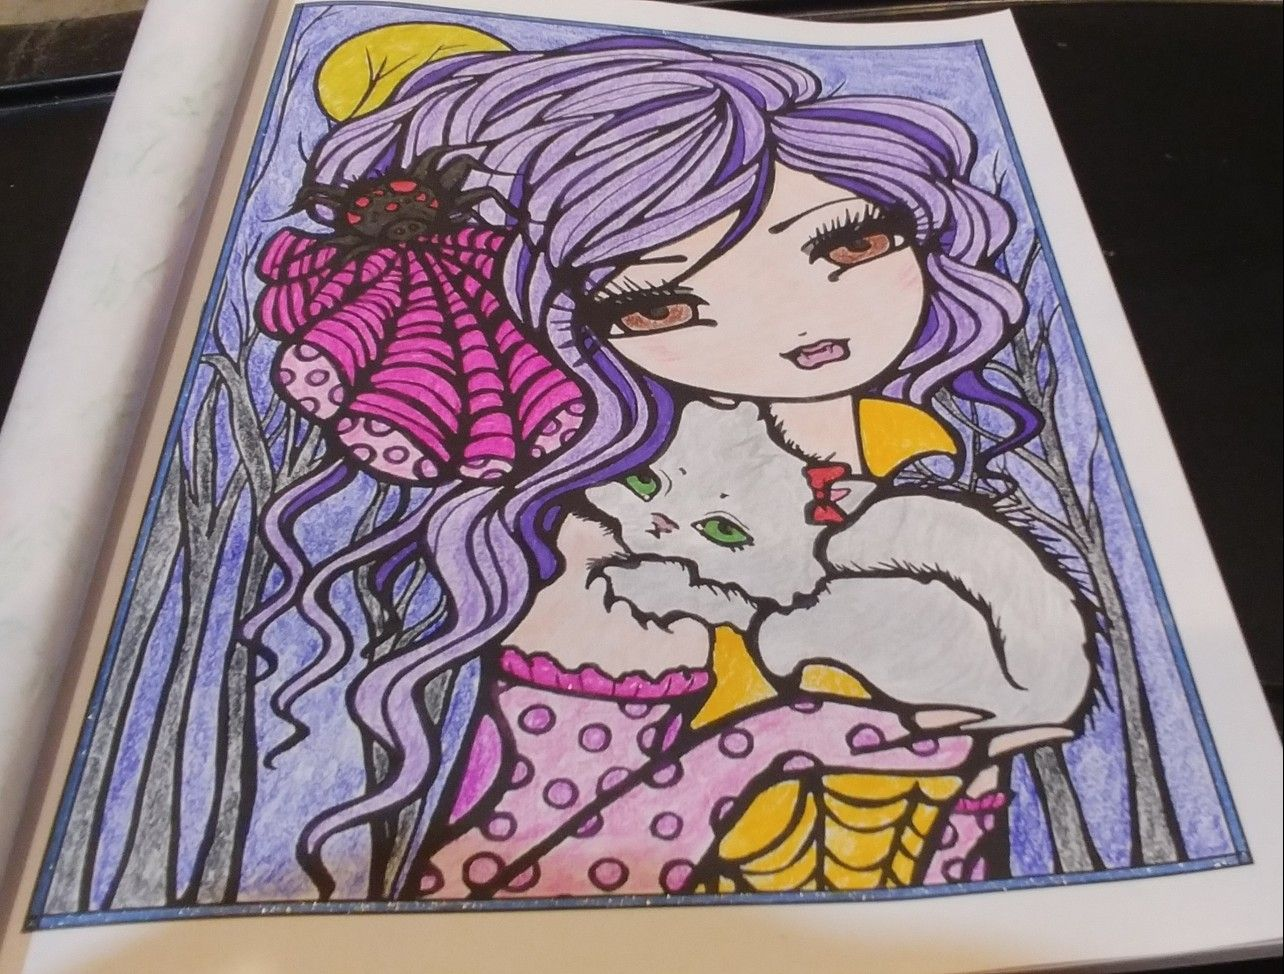 Finished Coloring Vixie Arteza Colored Pencils Gel Pens And Glitter Gel Pens From Mermaids Fairies Other Girls Of Whims In 2020 Coloring Books Gel Pens Arteza